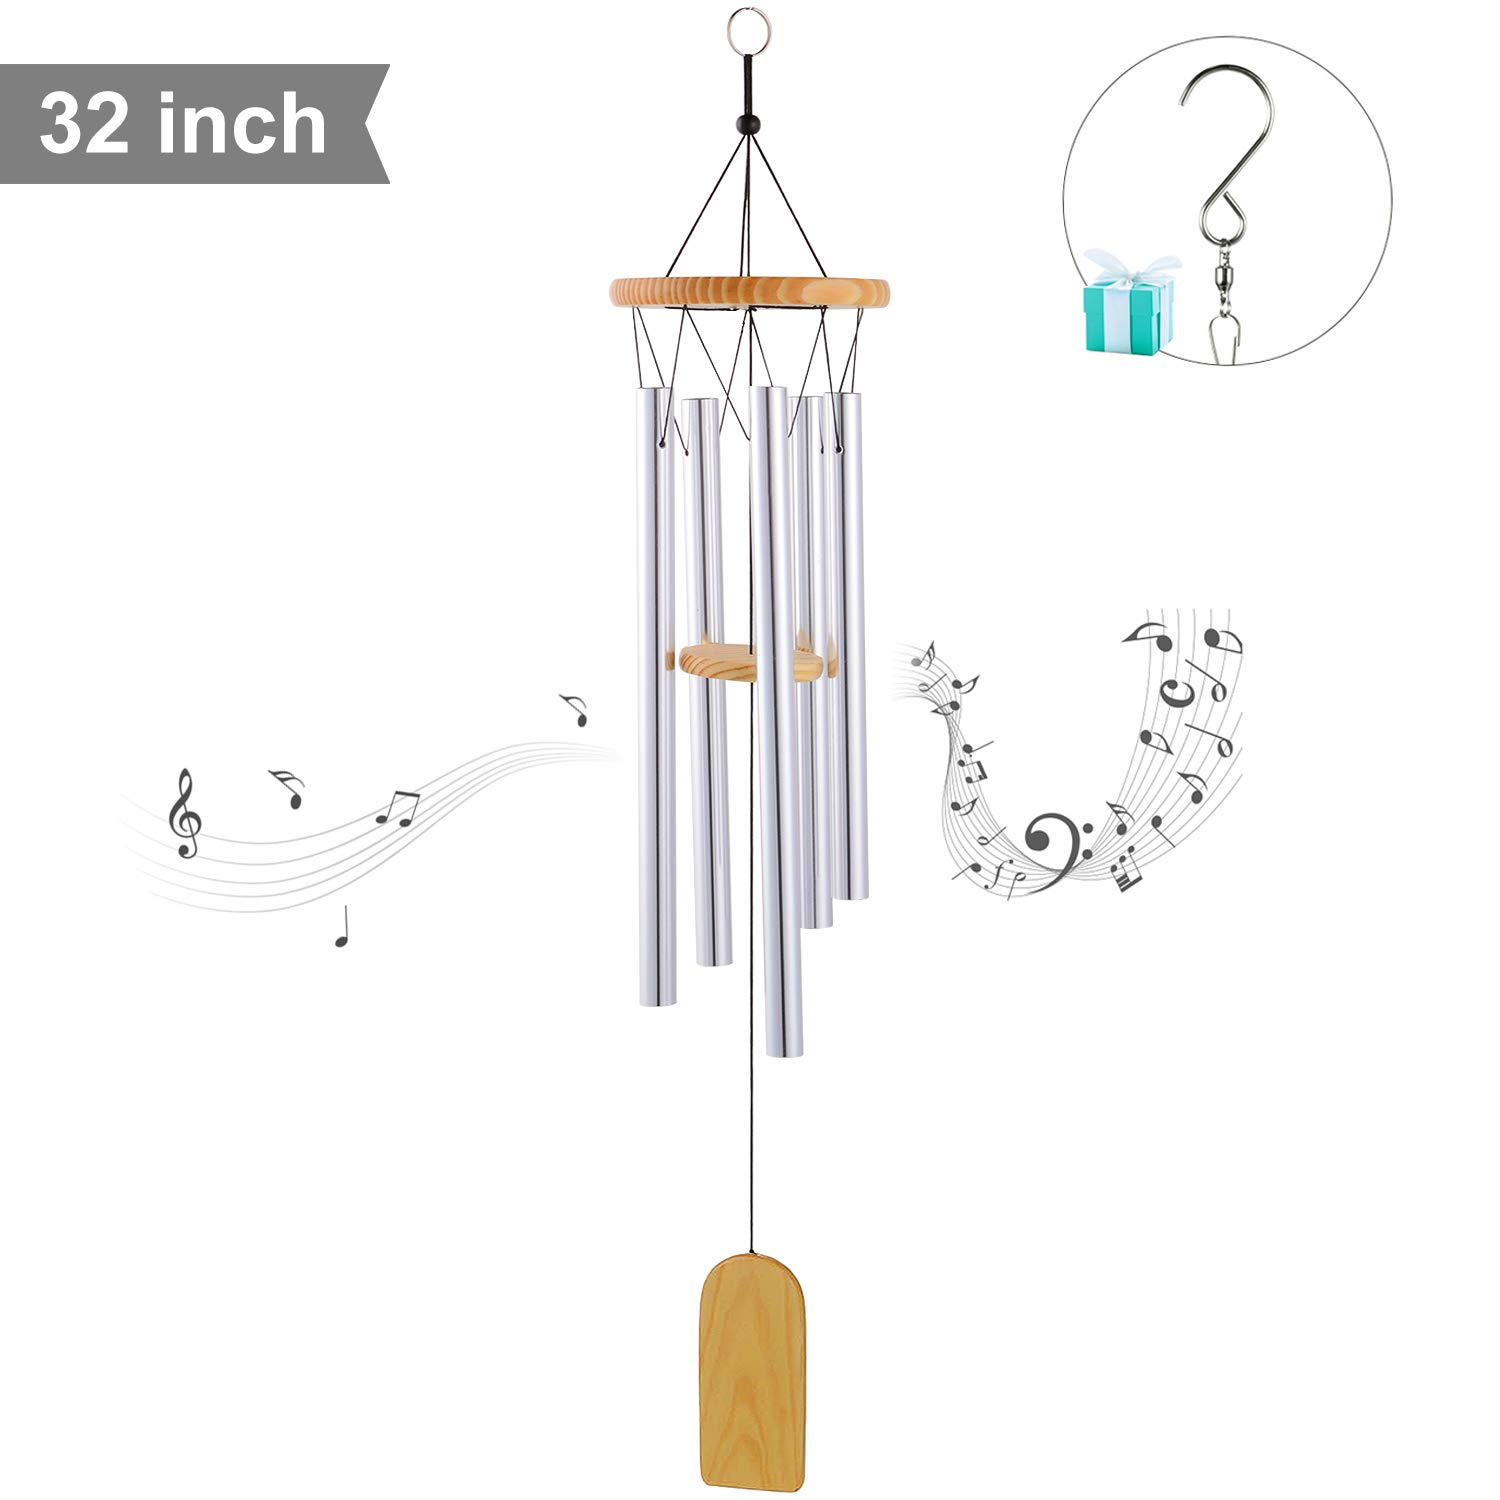 Wpky Beautiful Tune Wind Chime, Elegant Metal Design Musical Windchime with Sweet Sound, Perfect Decor for Garden, Patio, Balcony Outdoor & Indoor